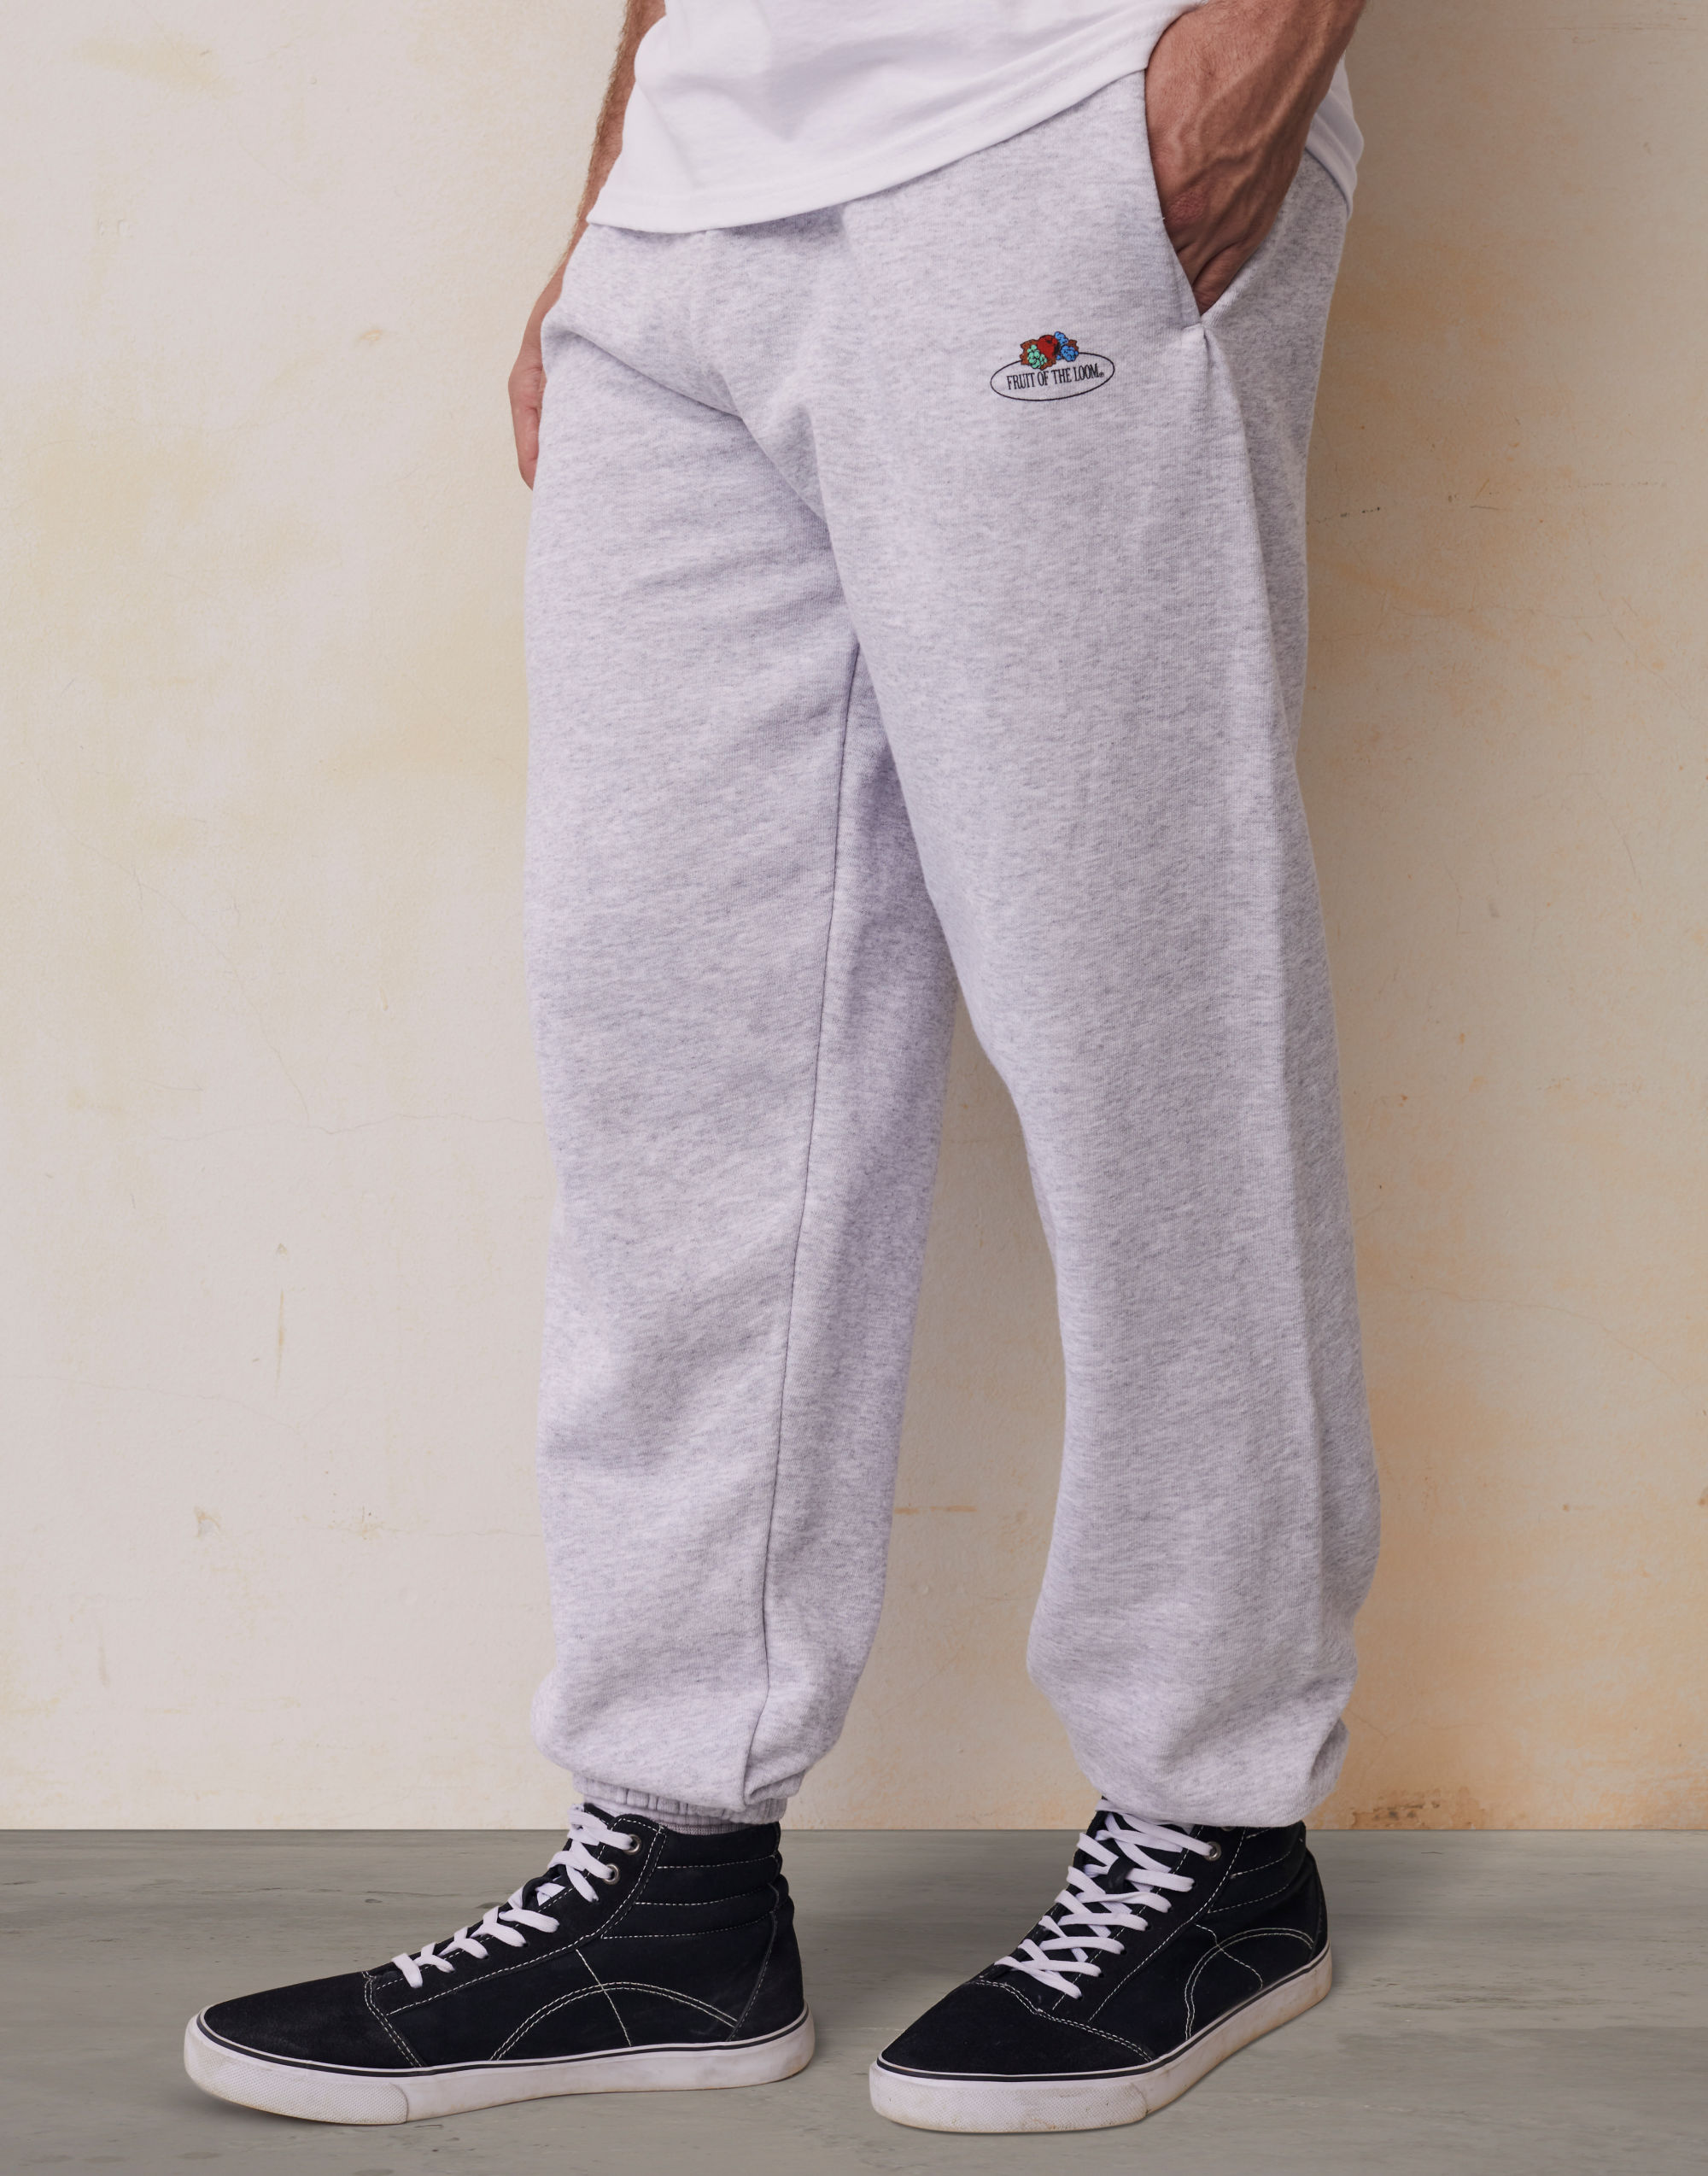 Fruit Of The Loom Retail Vintage Elasticated Cuff Jog Pants with Small Logo